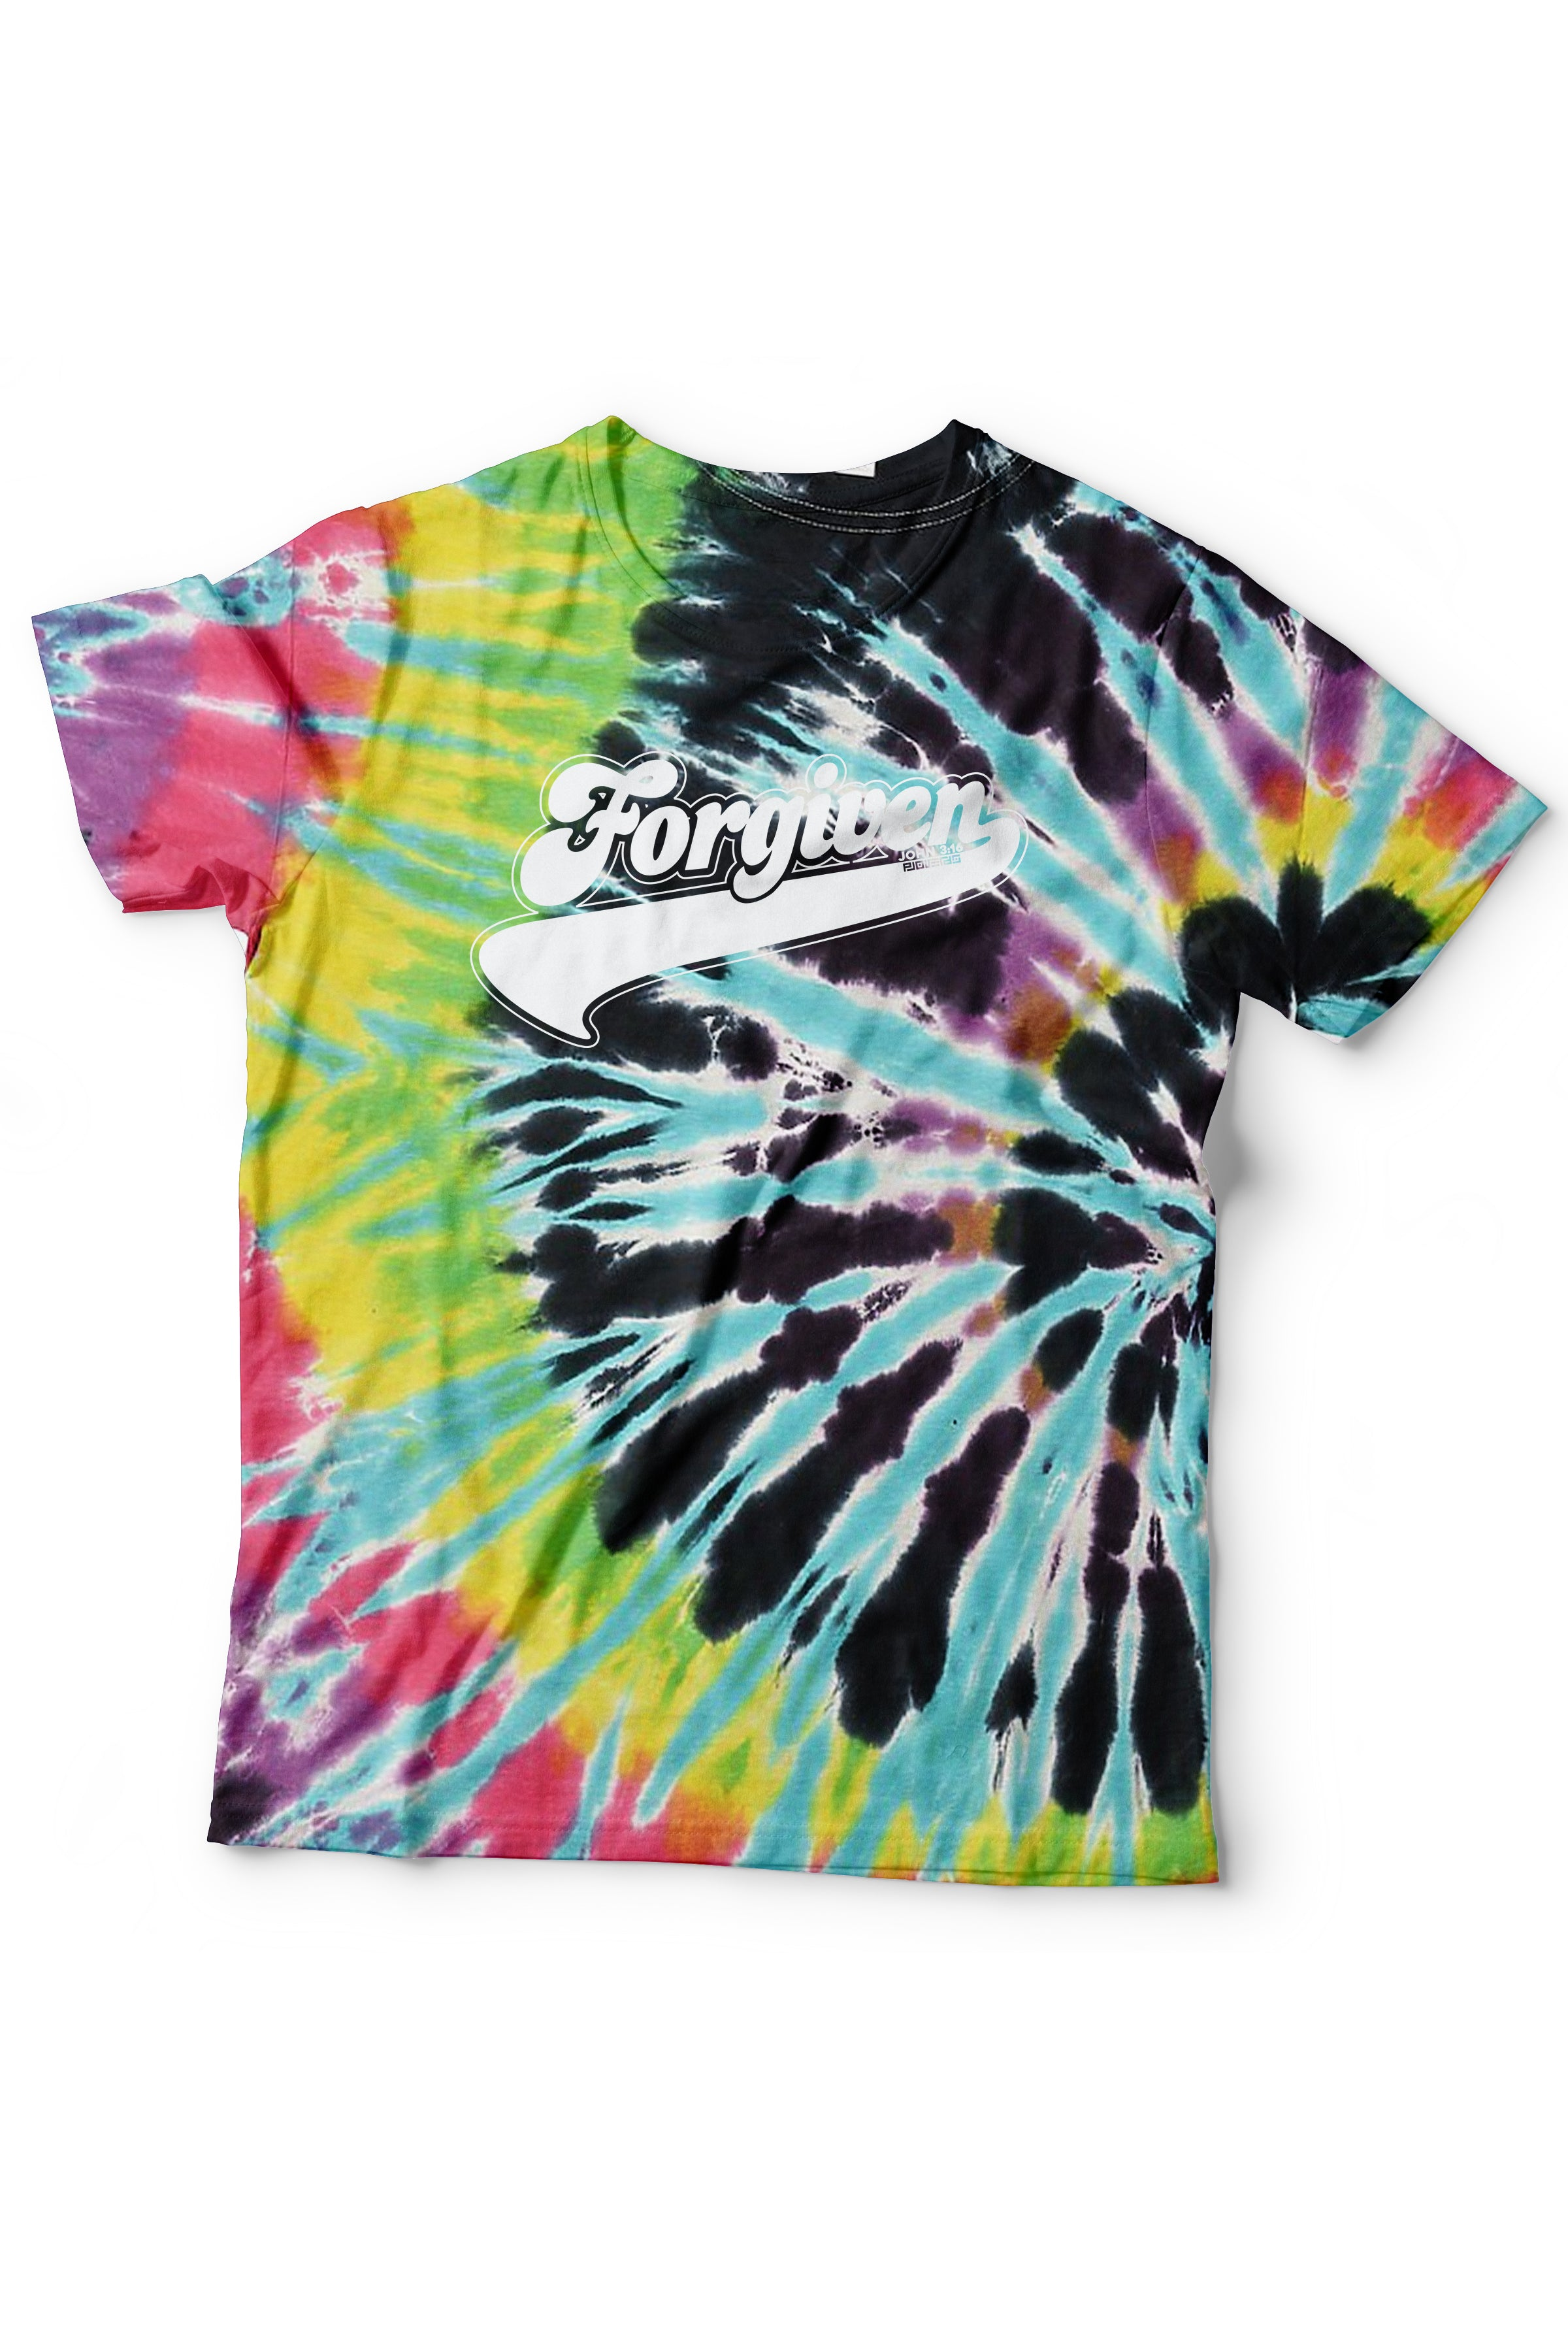 Forgiven - More Colors Available